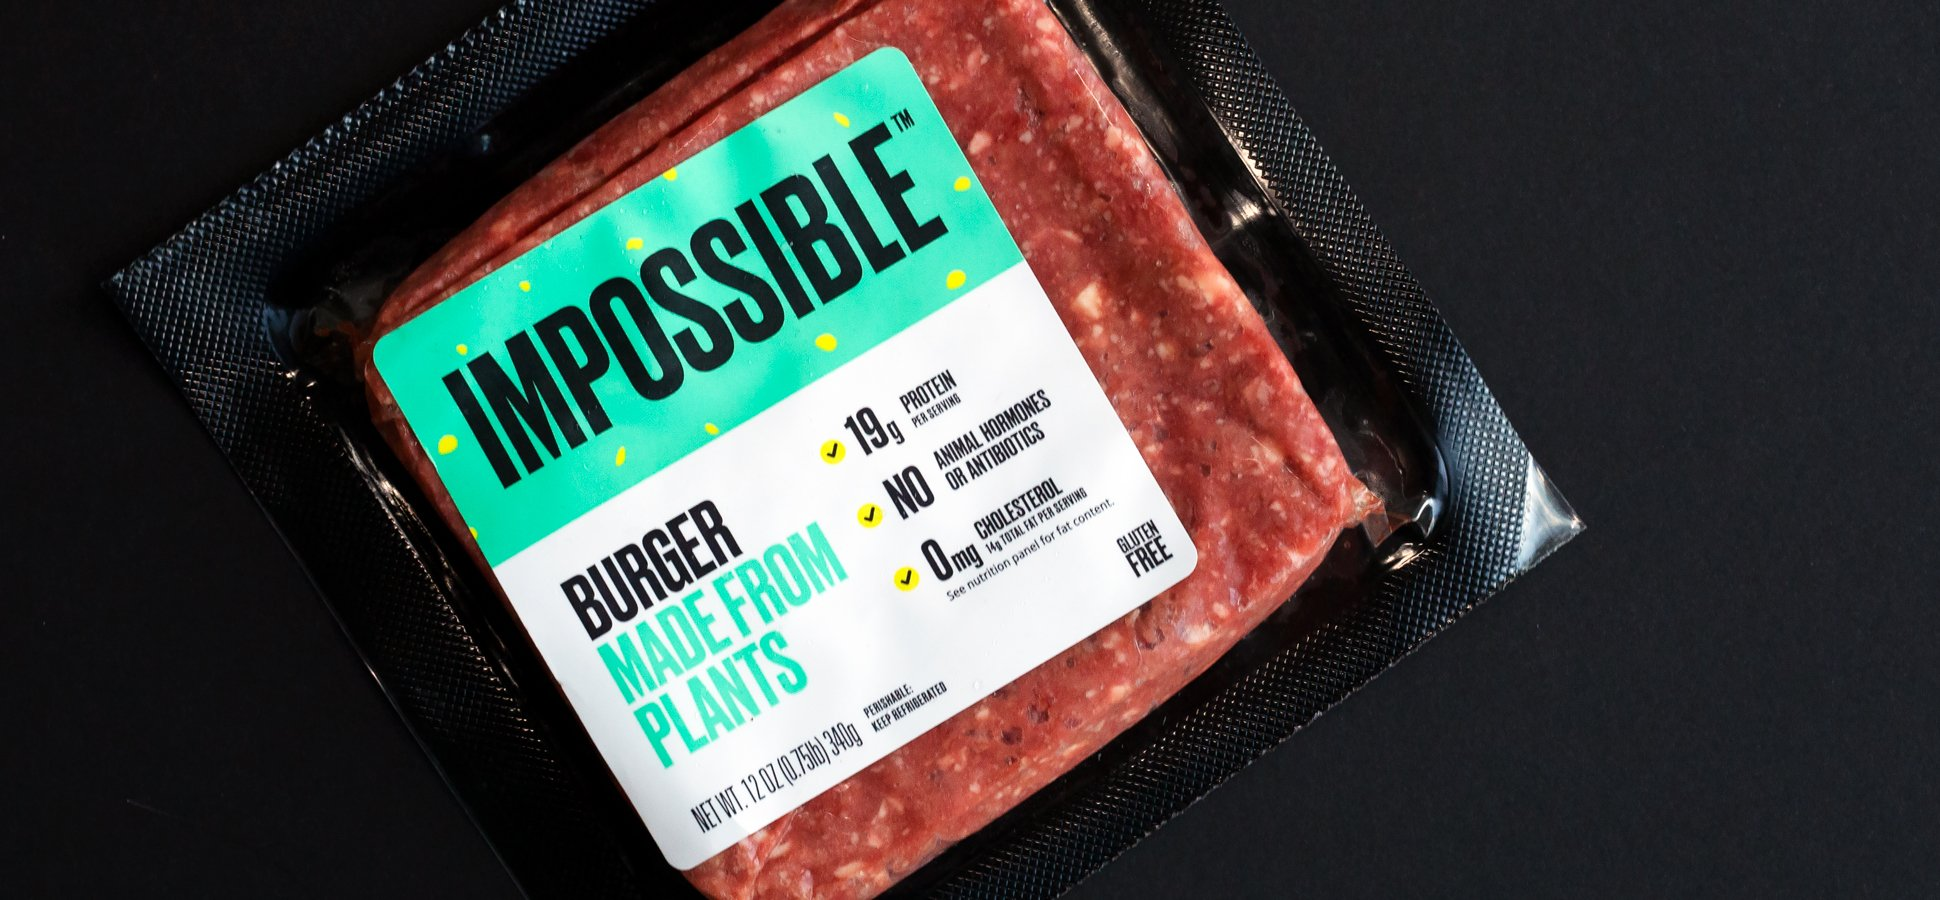 Impossible Foods Finally Brings Its Faux Meat Burgers to Grocery Stores